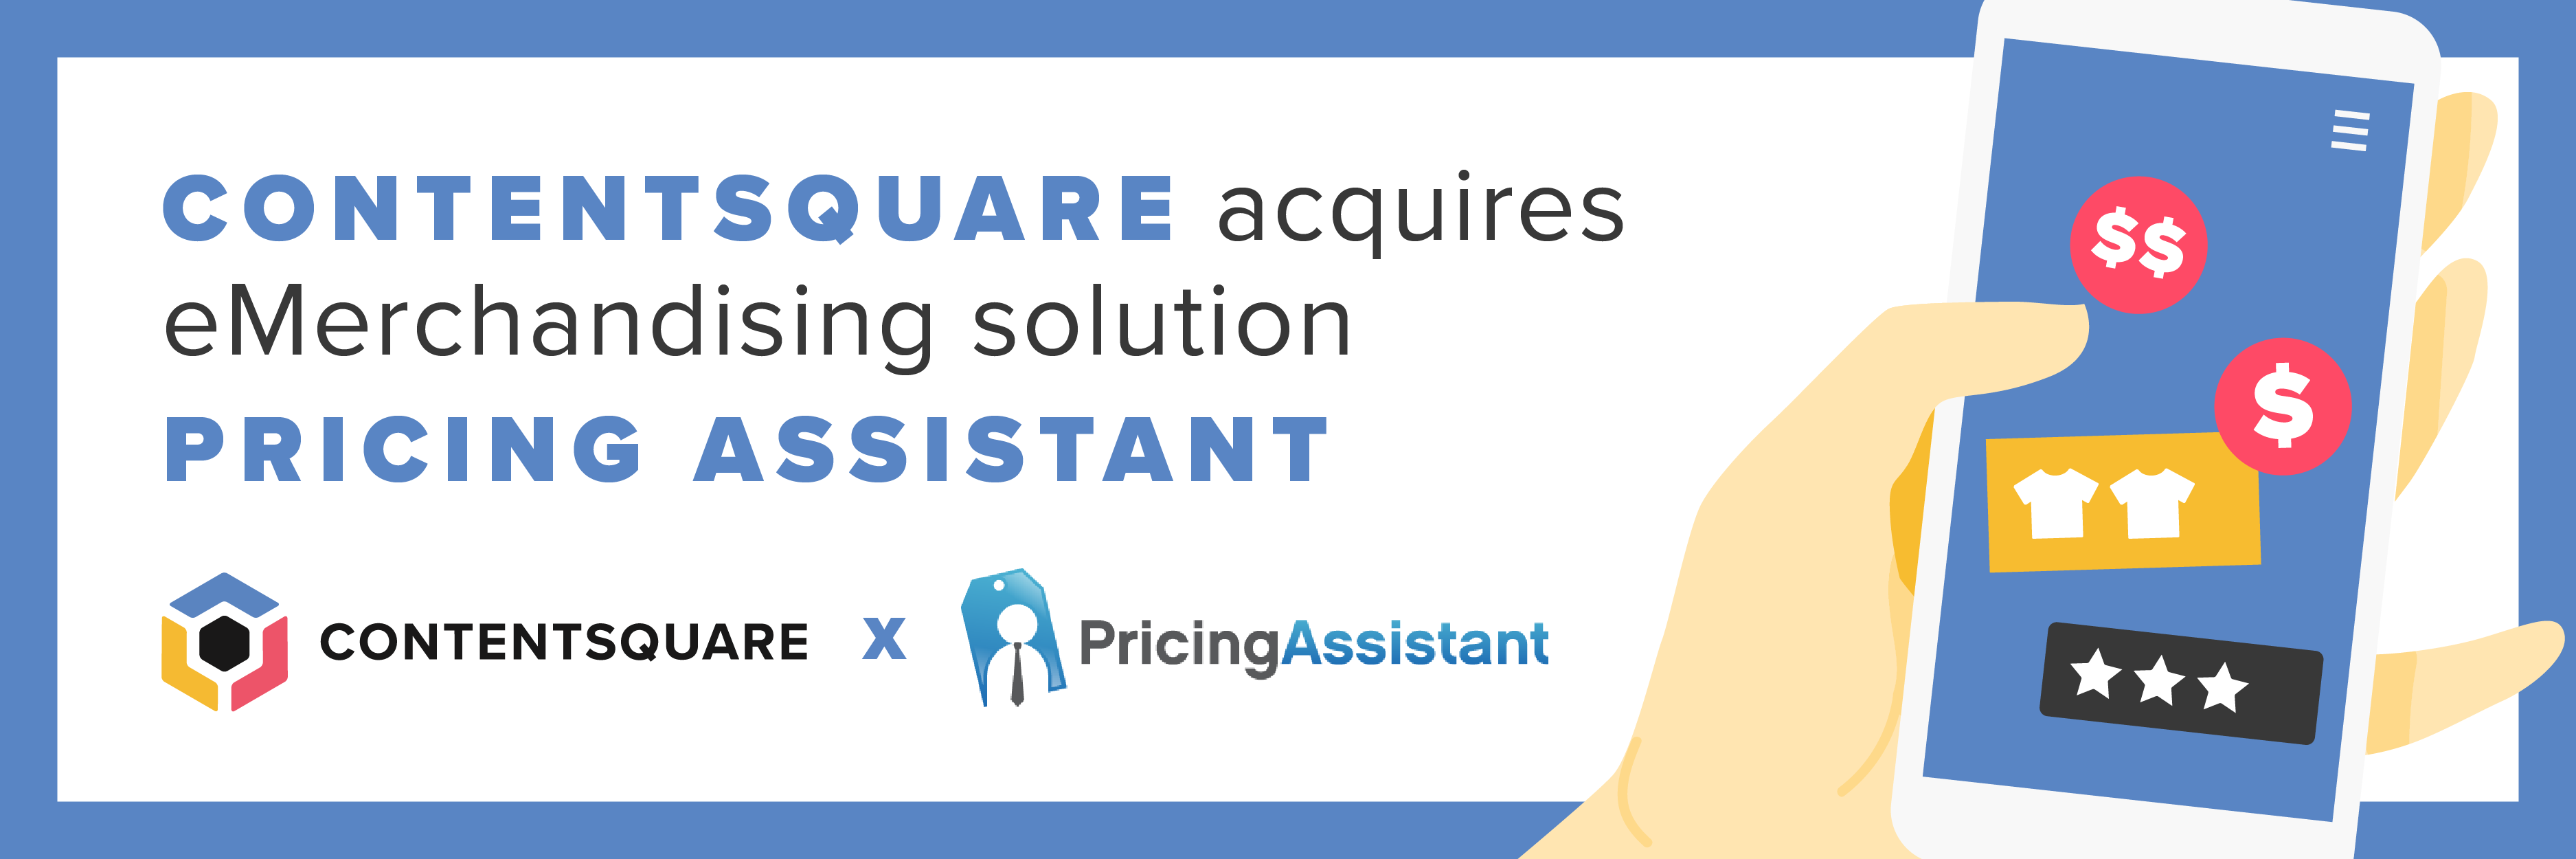 Contentsquare acquires Pricing Assistant